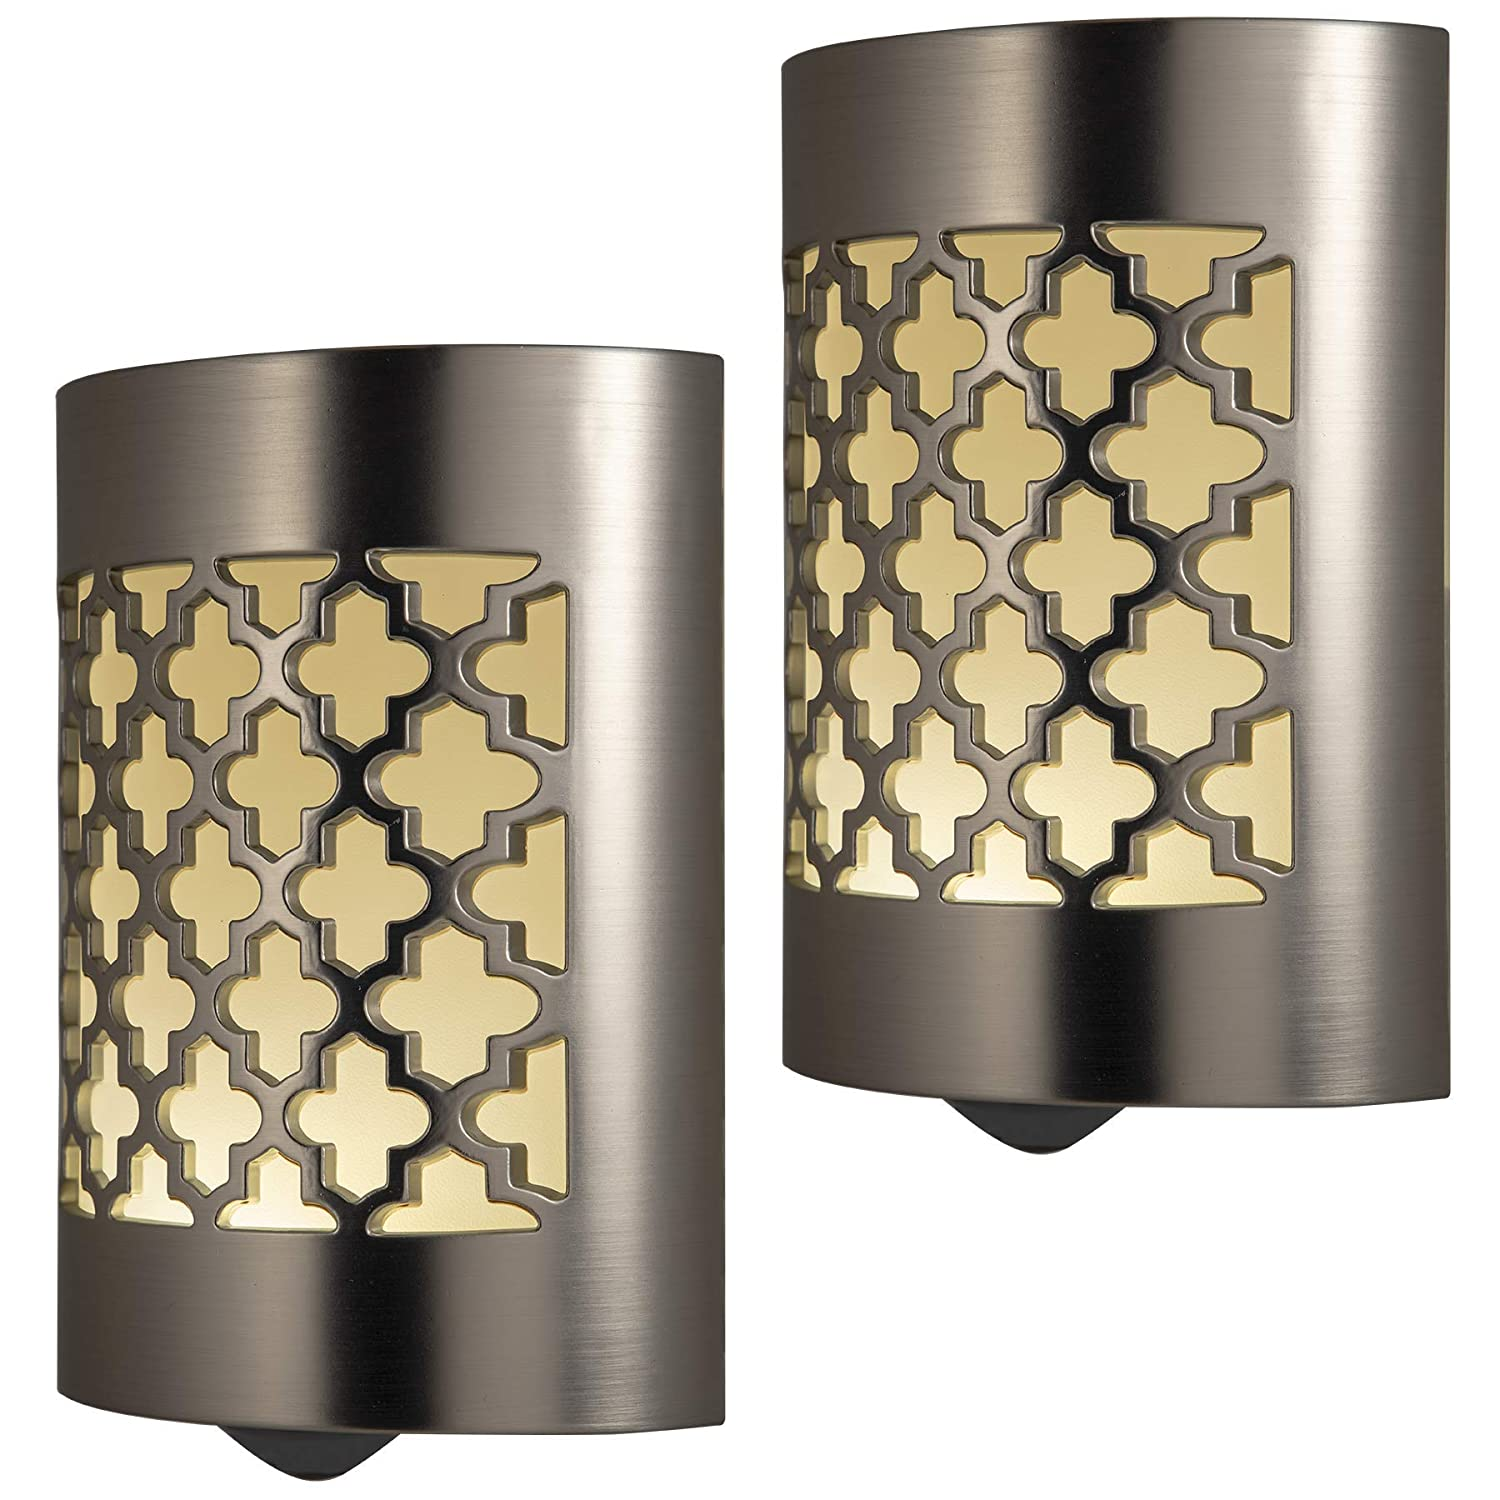 GE CoverLite LED Night Light Moroccan Design, 2 Pack, Plug-in, Dusk-to-Dawn Sensor, Home Decor, for Elderly, Ideal for Kitchen, Bathroom, Bedroom, Office, Nursery, Hallway, Brushed Nickel, 46815,